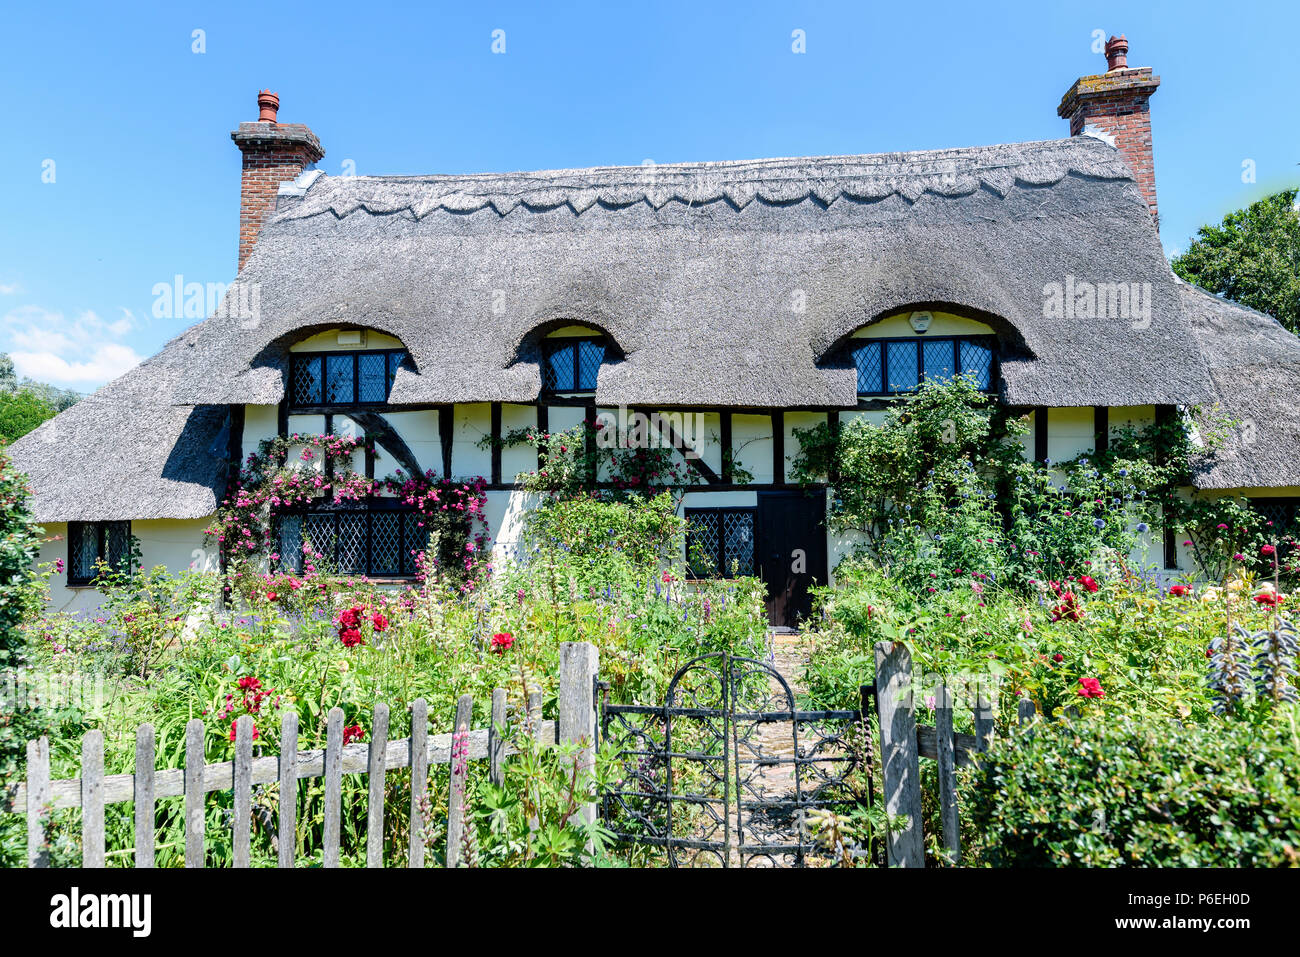 Cottage with thatched roof - Stock Image